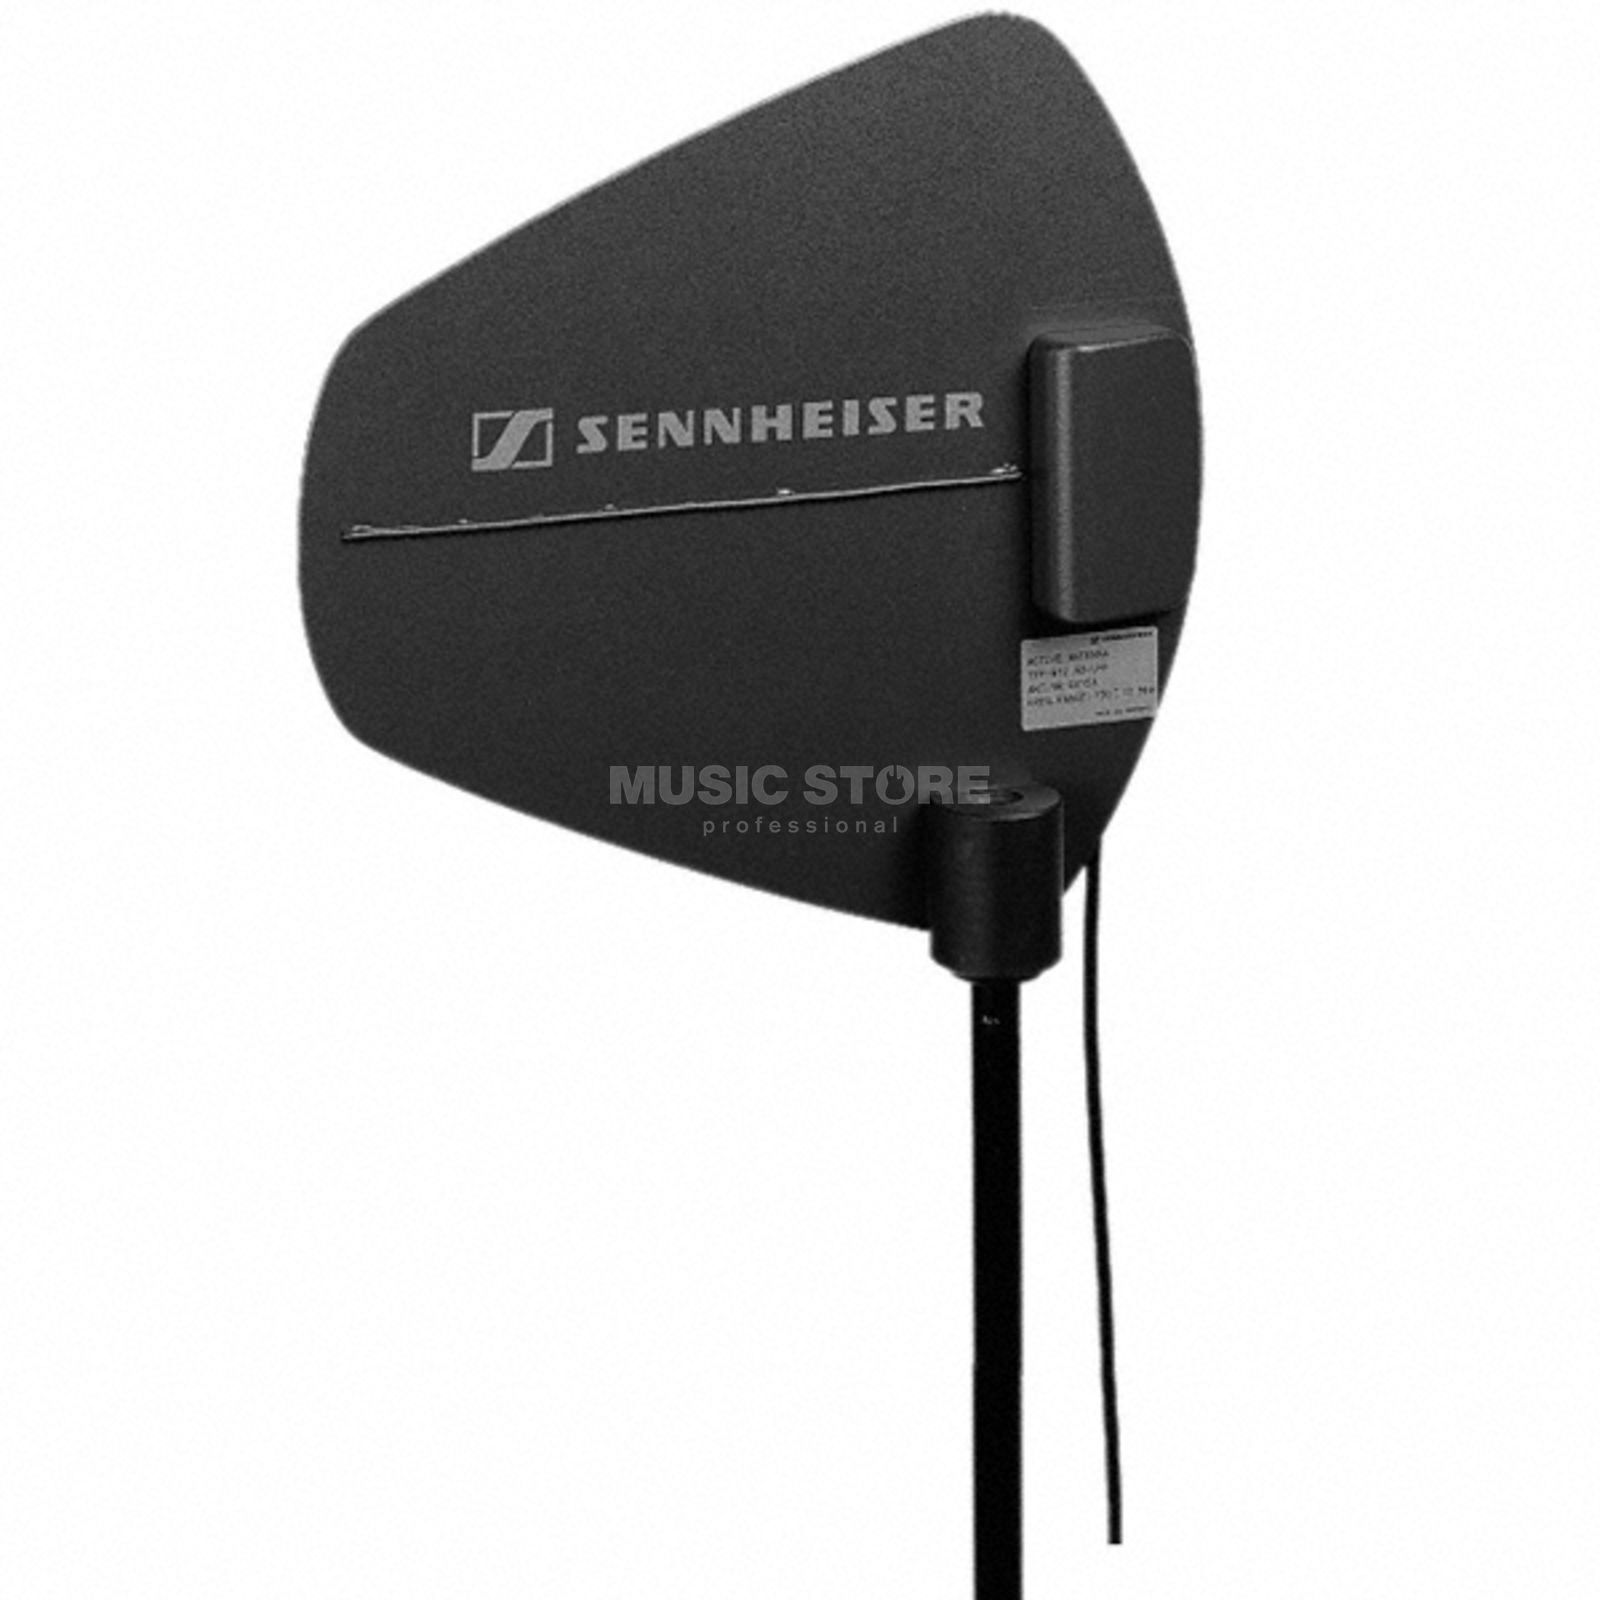 Sennheiser A 12AD, E-Band, Richt Antenna Active 823 - 865MHz Product Image